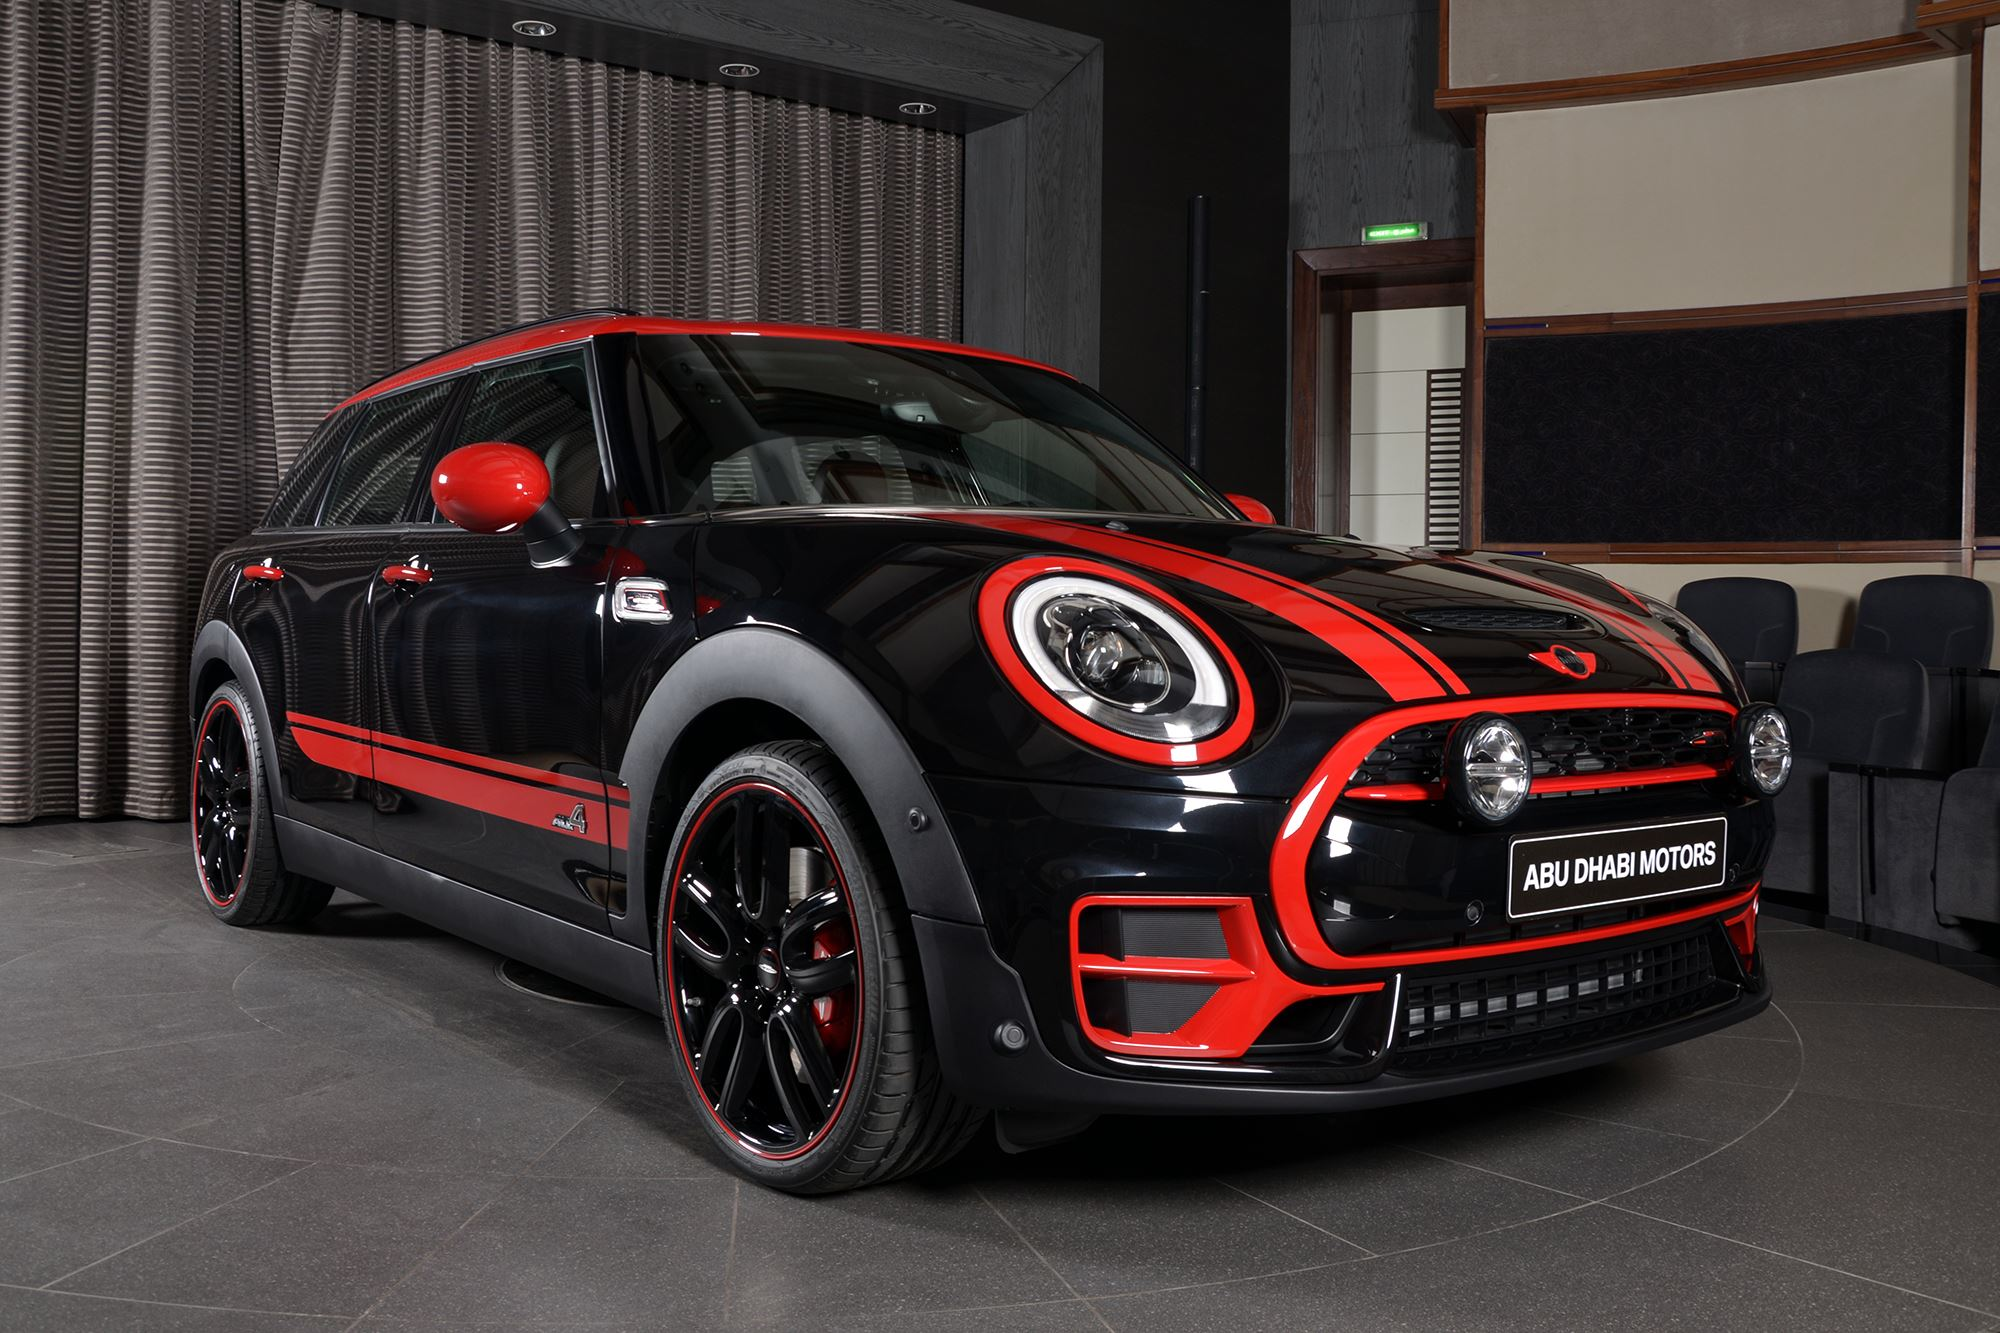 MINI Clubman JCW and Countryman JCW could get X2 M35i's engine